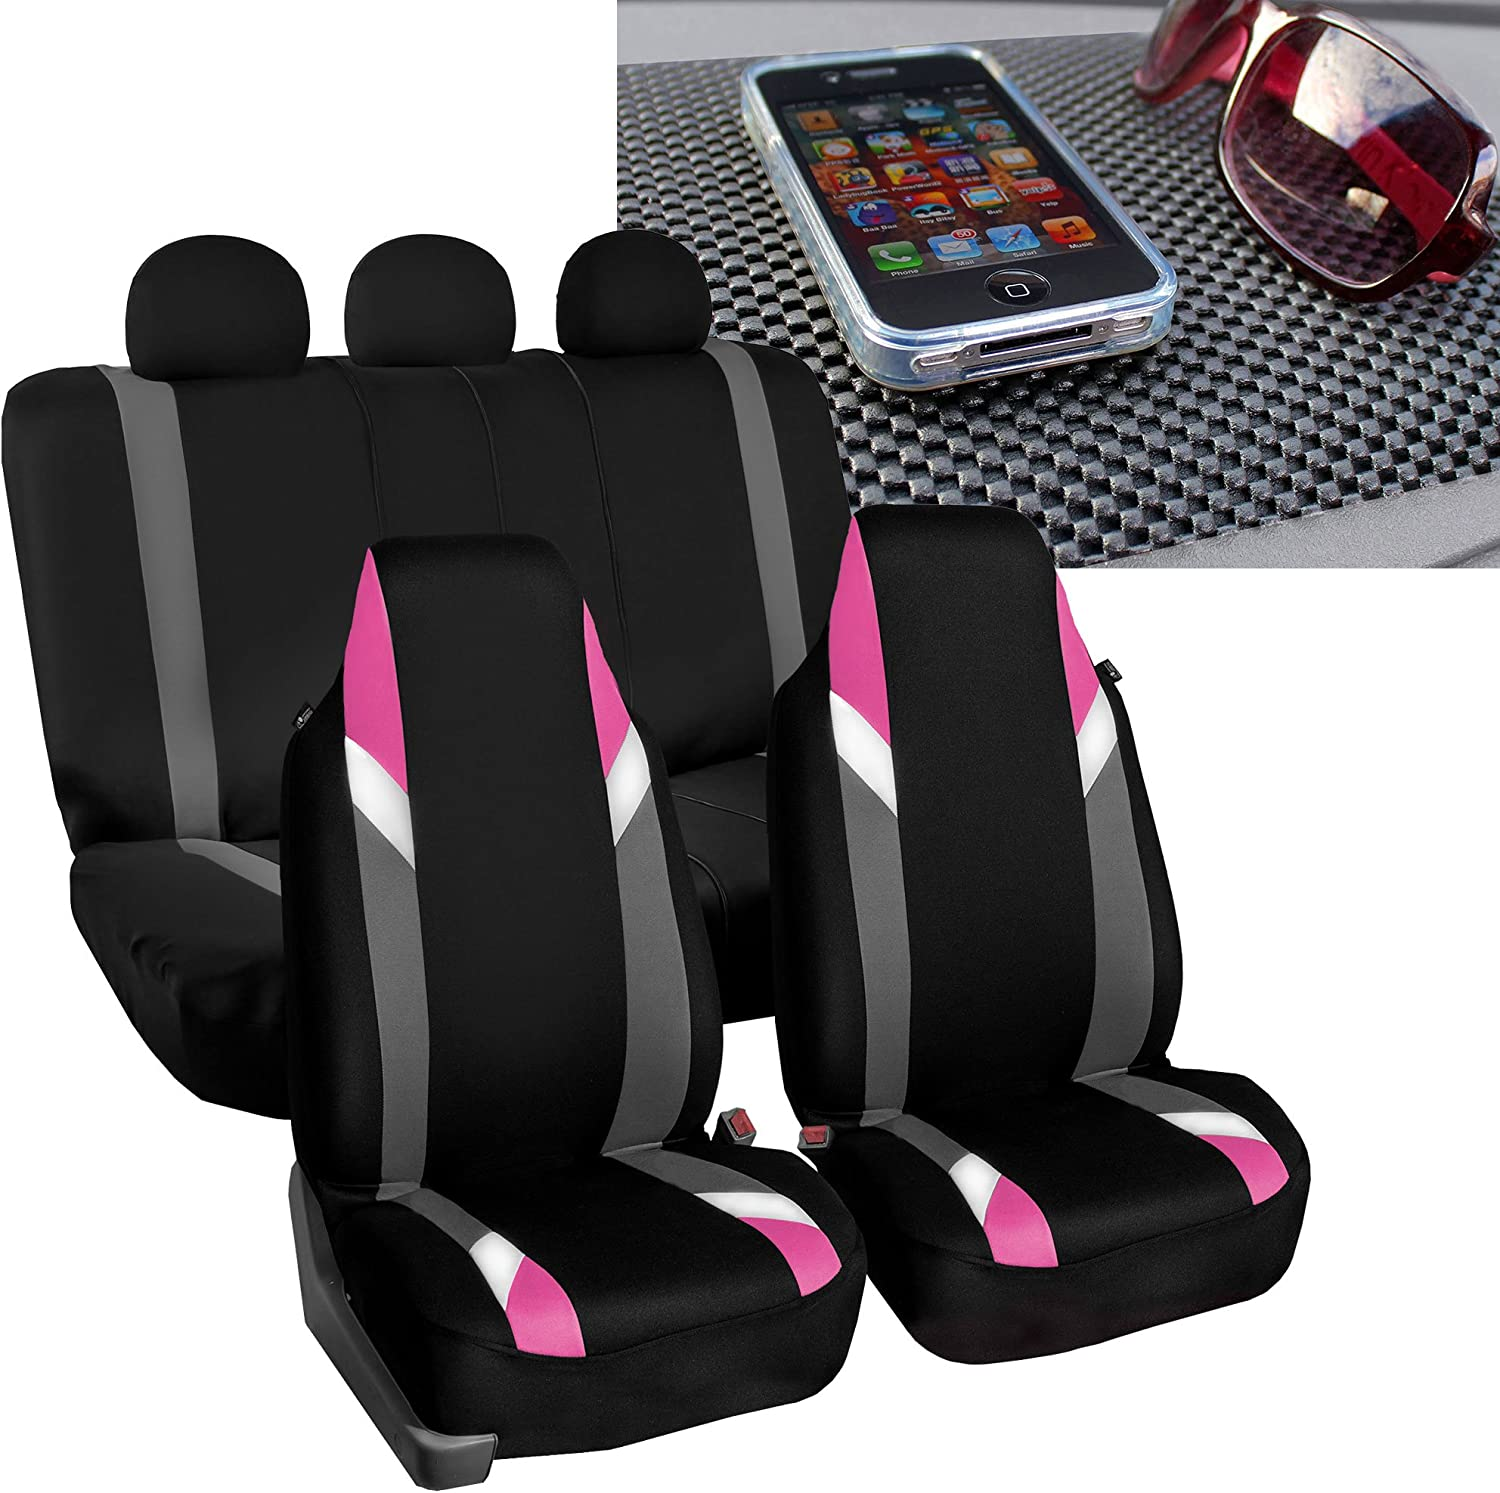 FH Group FB133115 Full Set Premium Modernistic Seat Covers Pink/Black with FH1002 Non-Slip Dash Pad- Fit Most Car, Truck, SUV, or Van